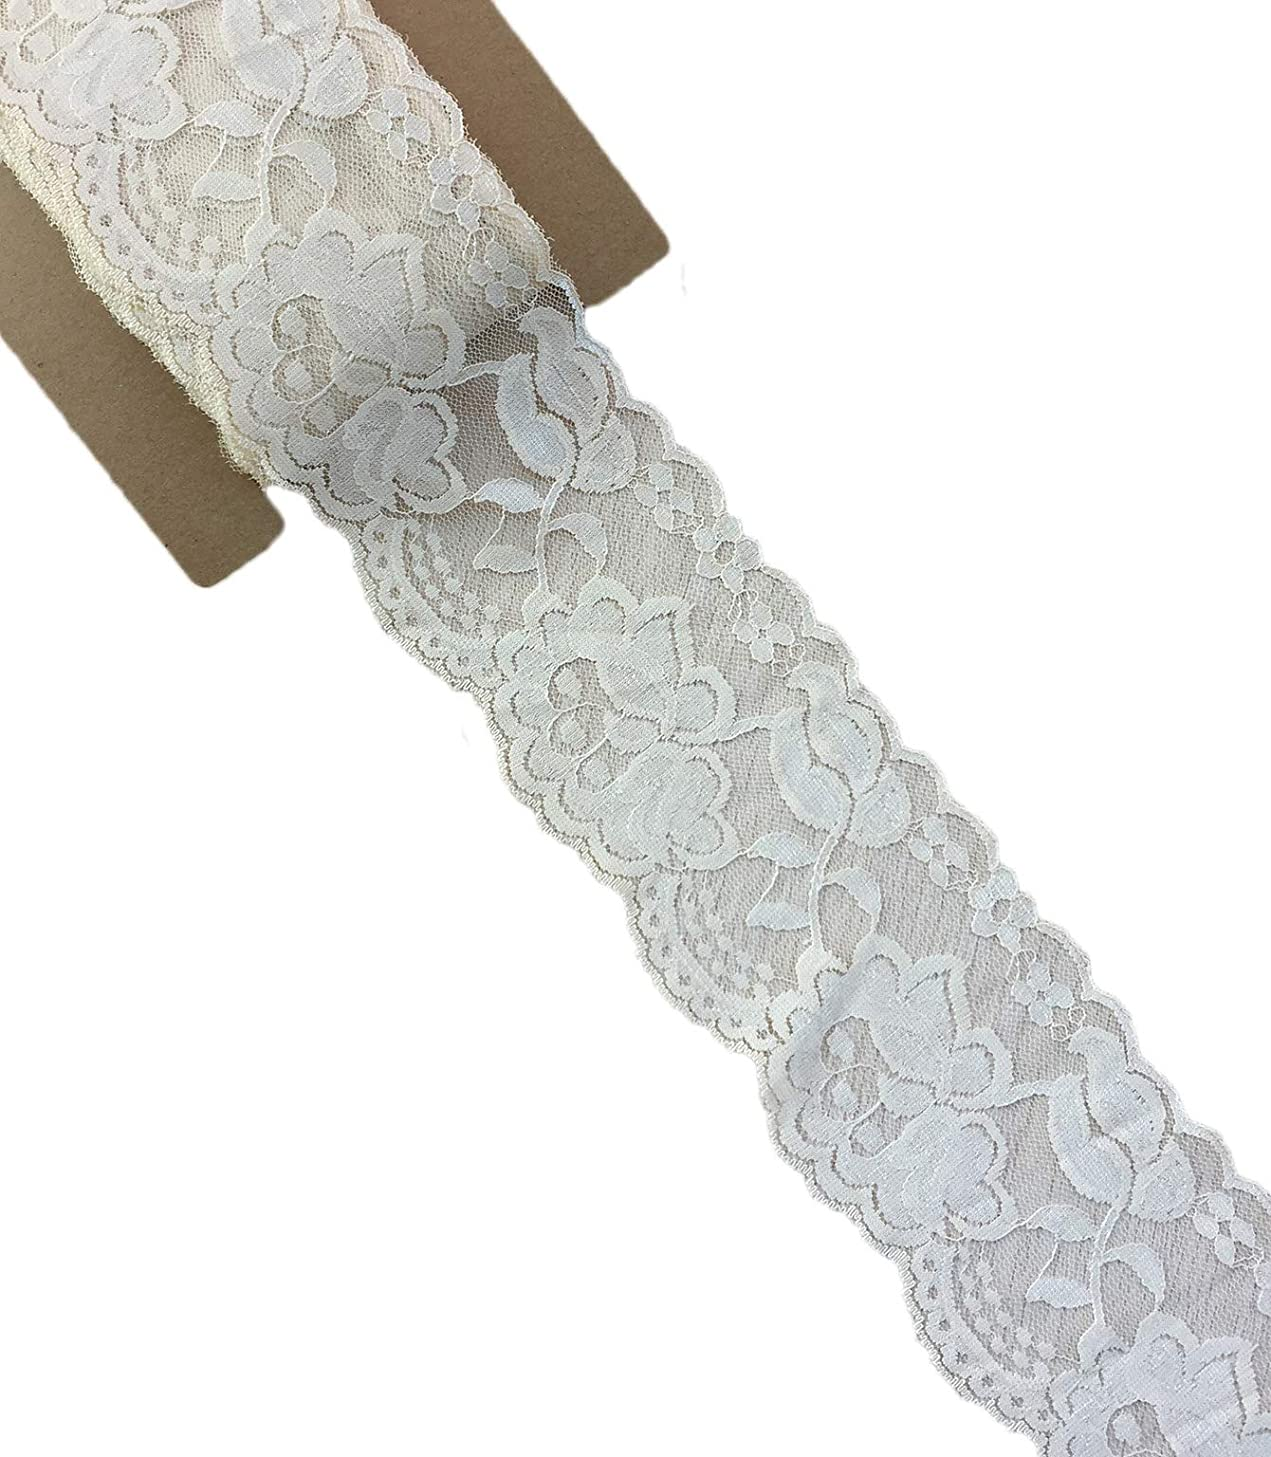 Lace Realm 3.15 Inches Wide×10 Yards Stretch Floral Pattern Lace Ribbon Trim Lace for Headbands Garters & Crafts (Pearled Ivory)